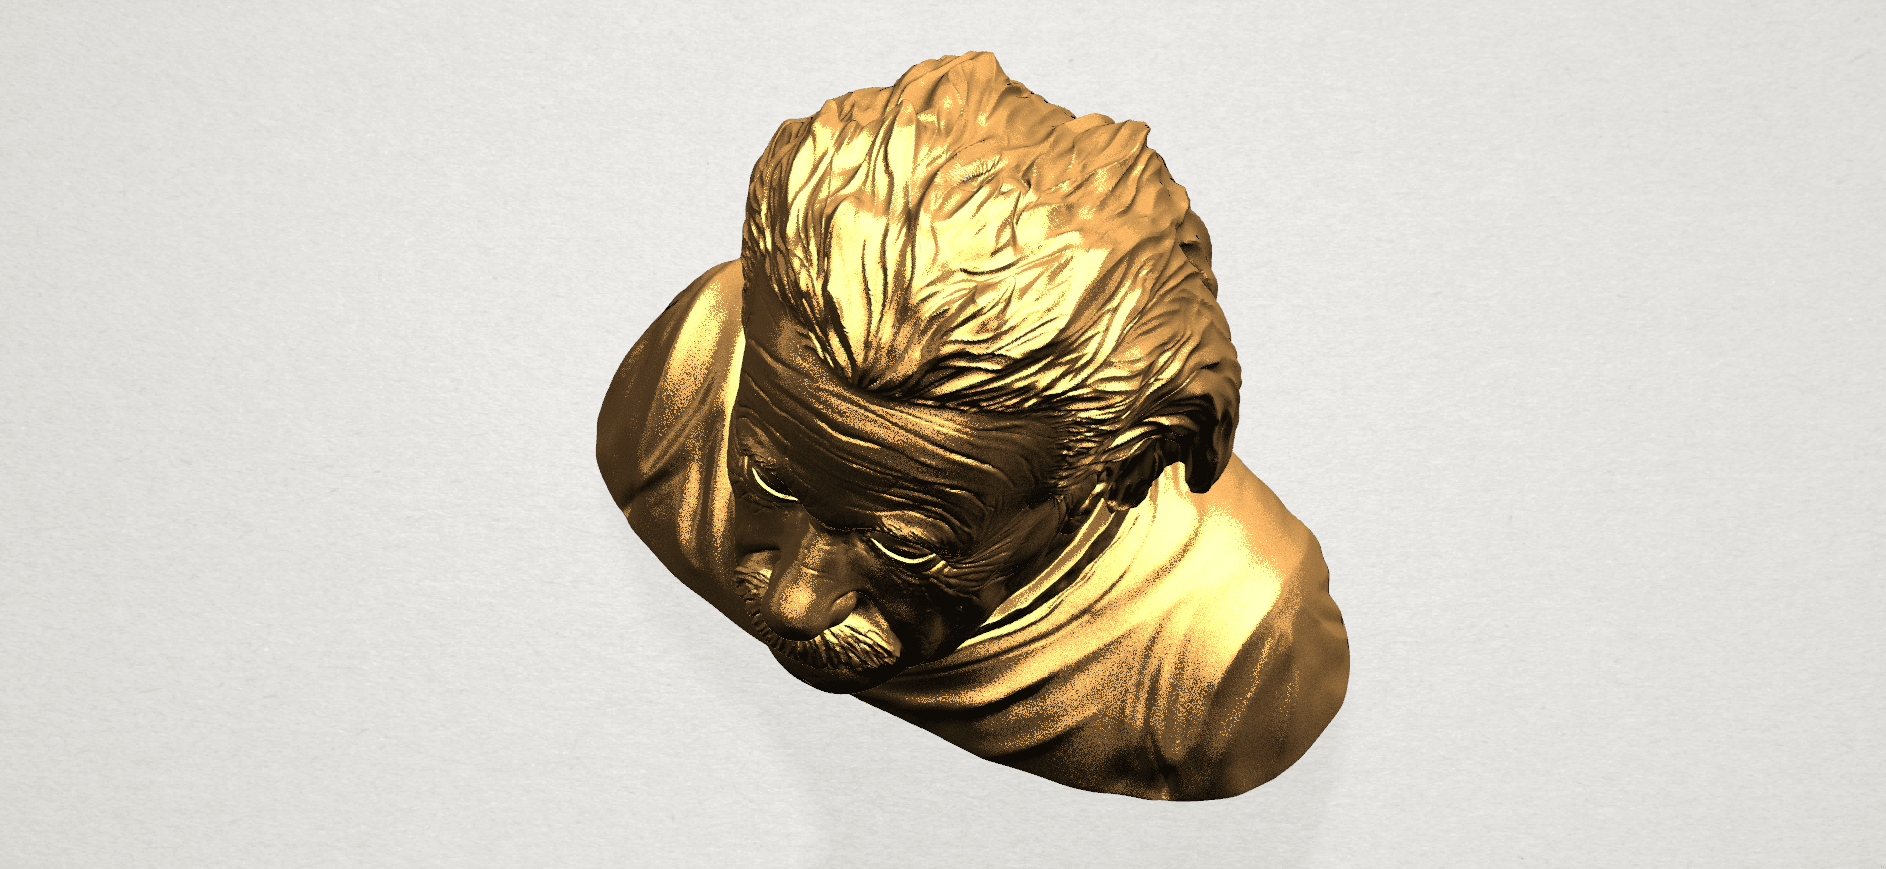 Einstein A08.png Download free STL file Einstein • 3D printer template, GeorgesNikkei